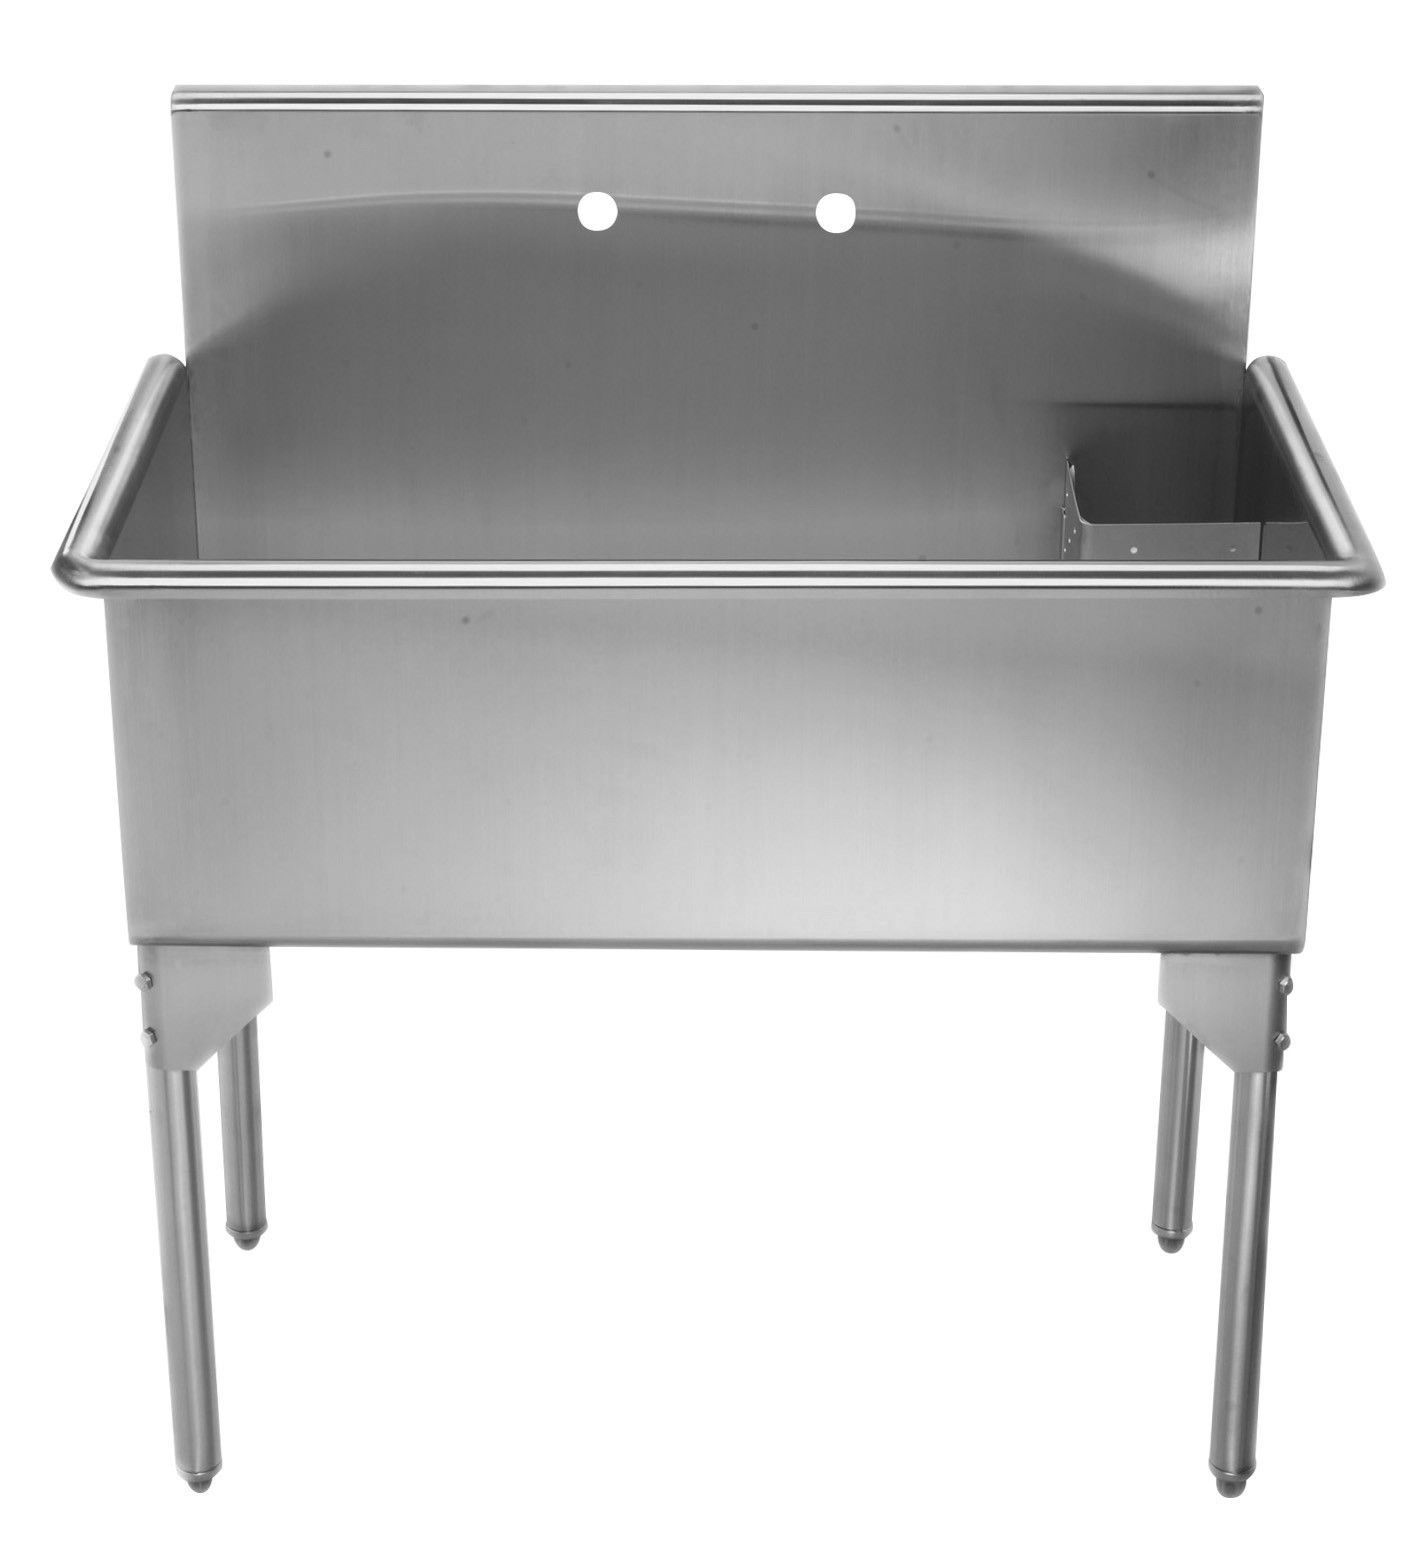 Pearlhaus 39 13 X 21 13 Freestanding Service Sink With Images